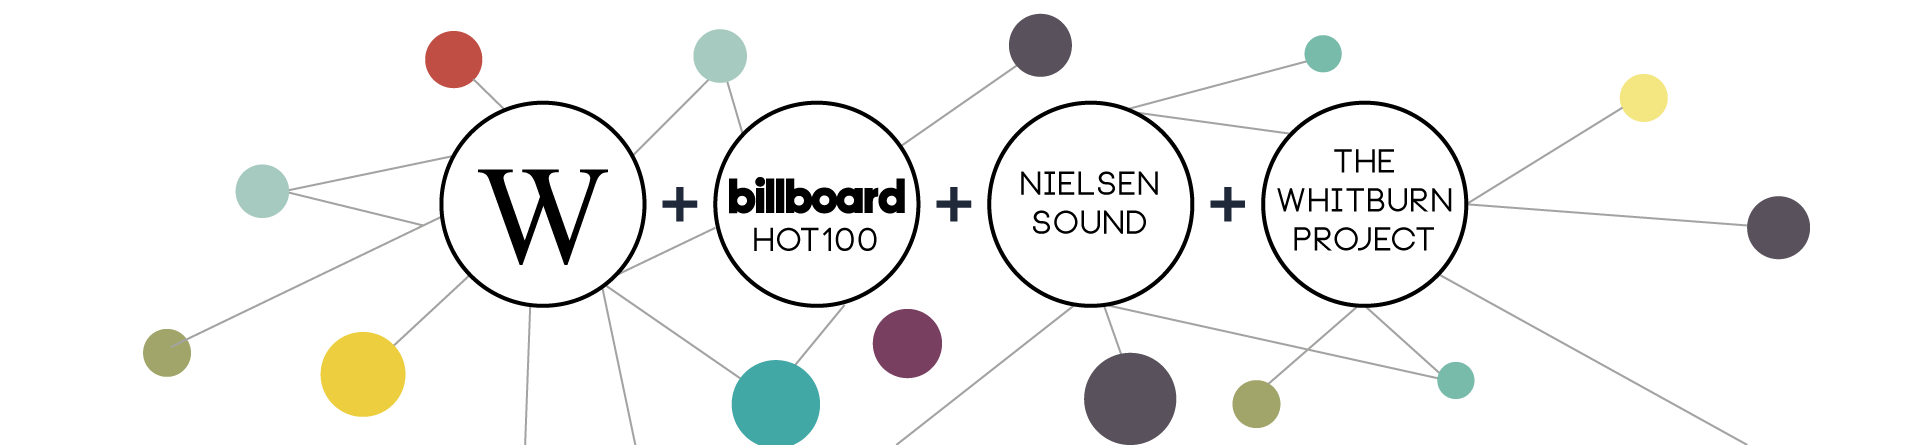 Datos a partir de billboard, wikipedia,nielsen sound,the whithburn project